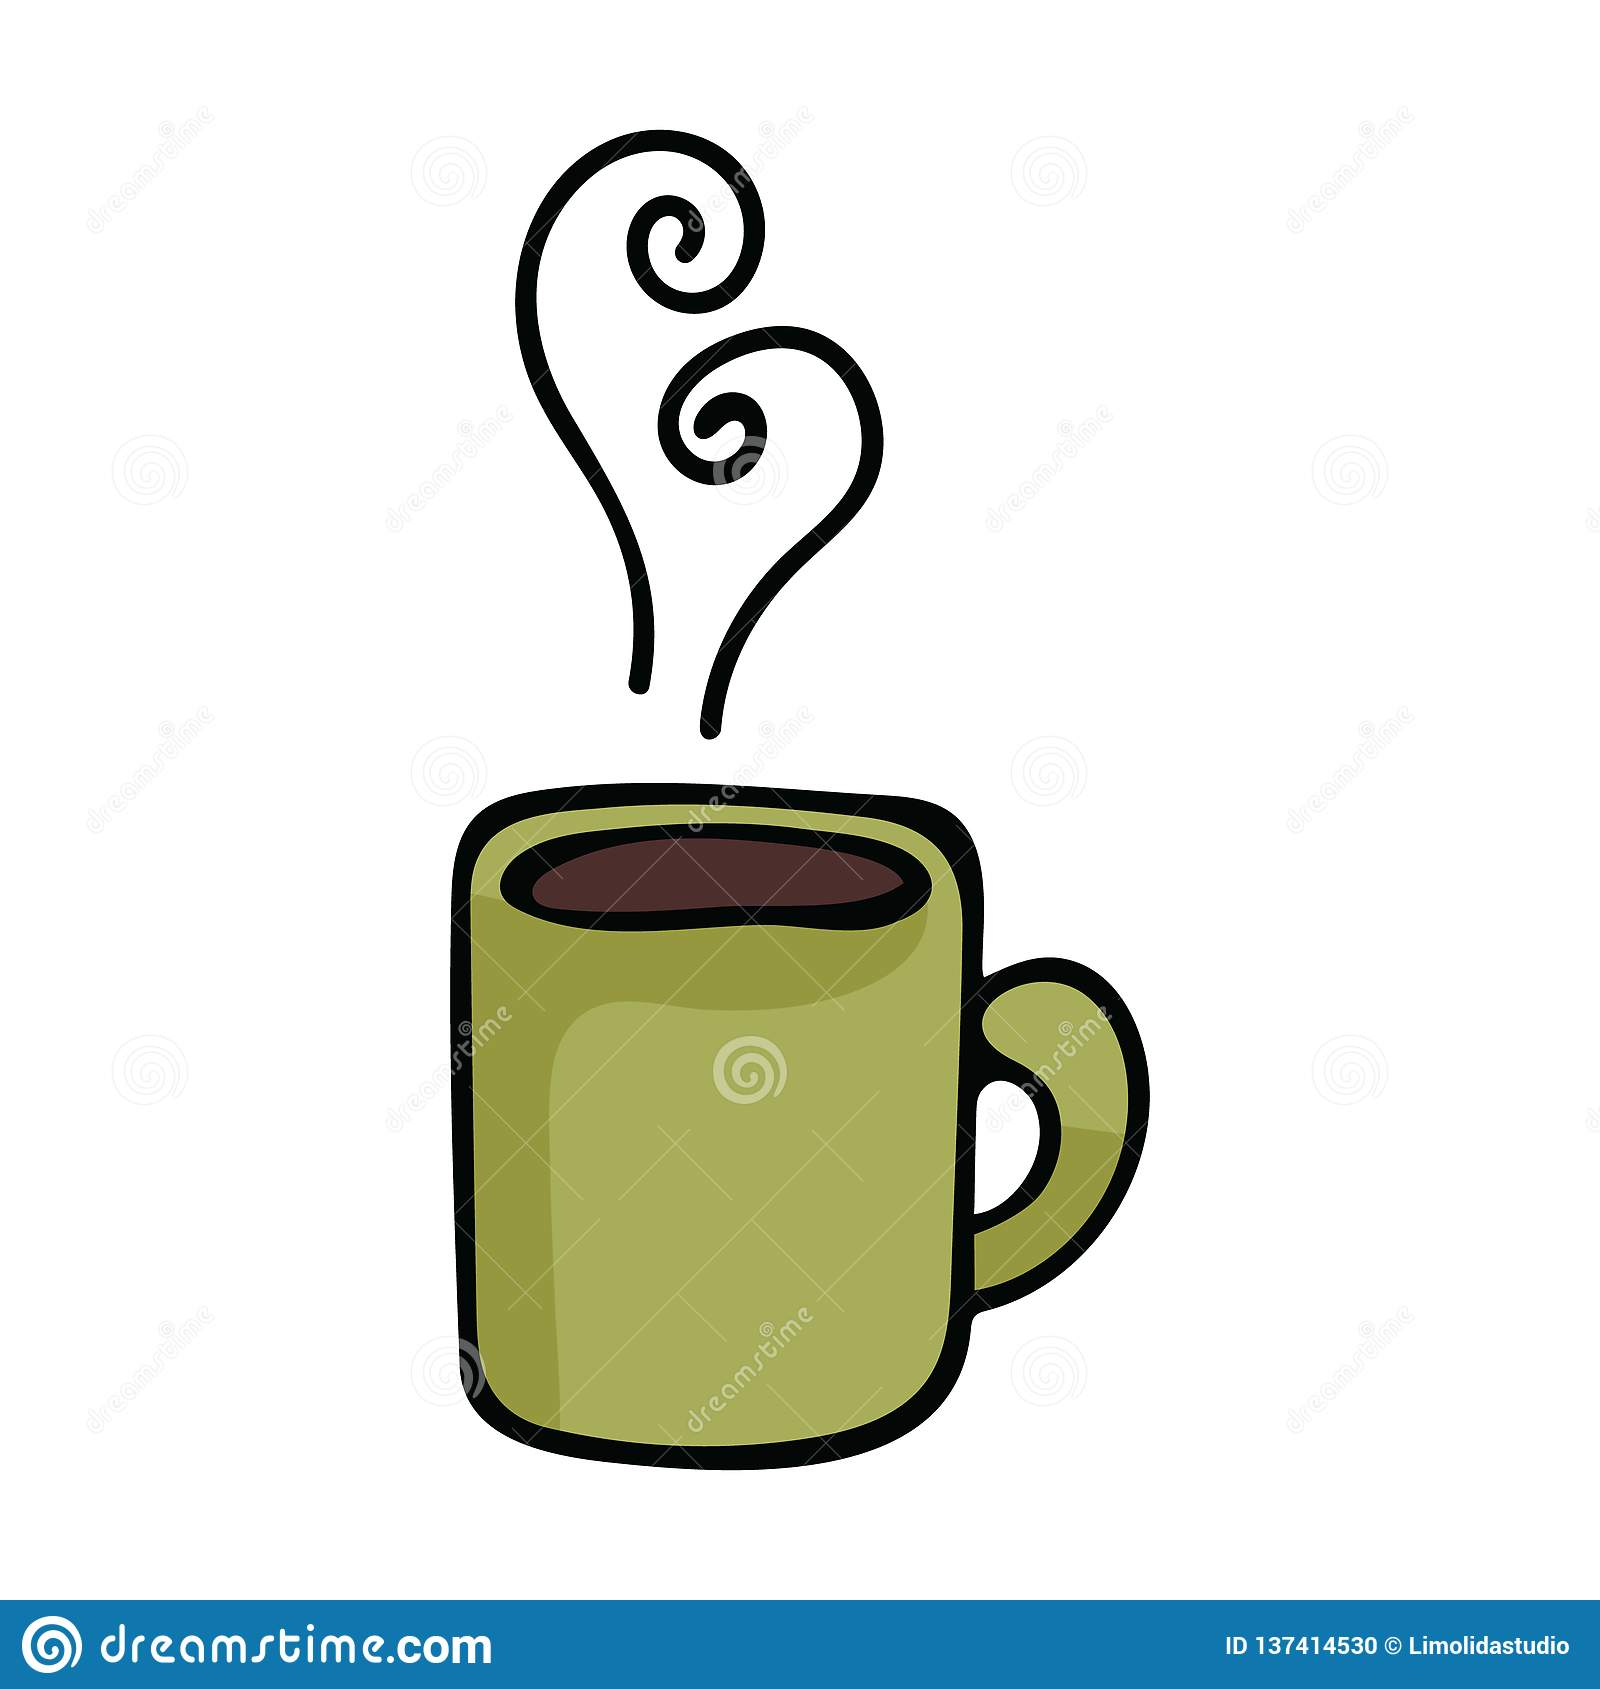 Cute Coffee Mug Cartoon Vector Illustration Motif Set Stock.